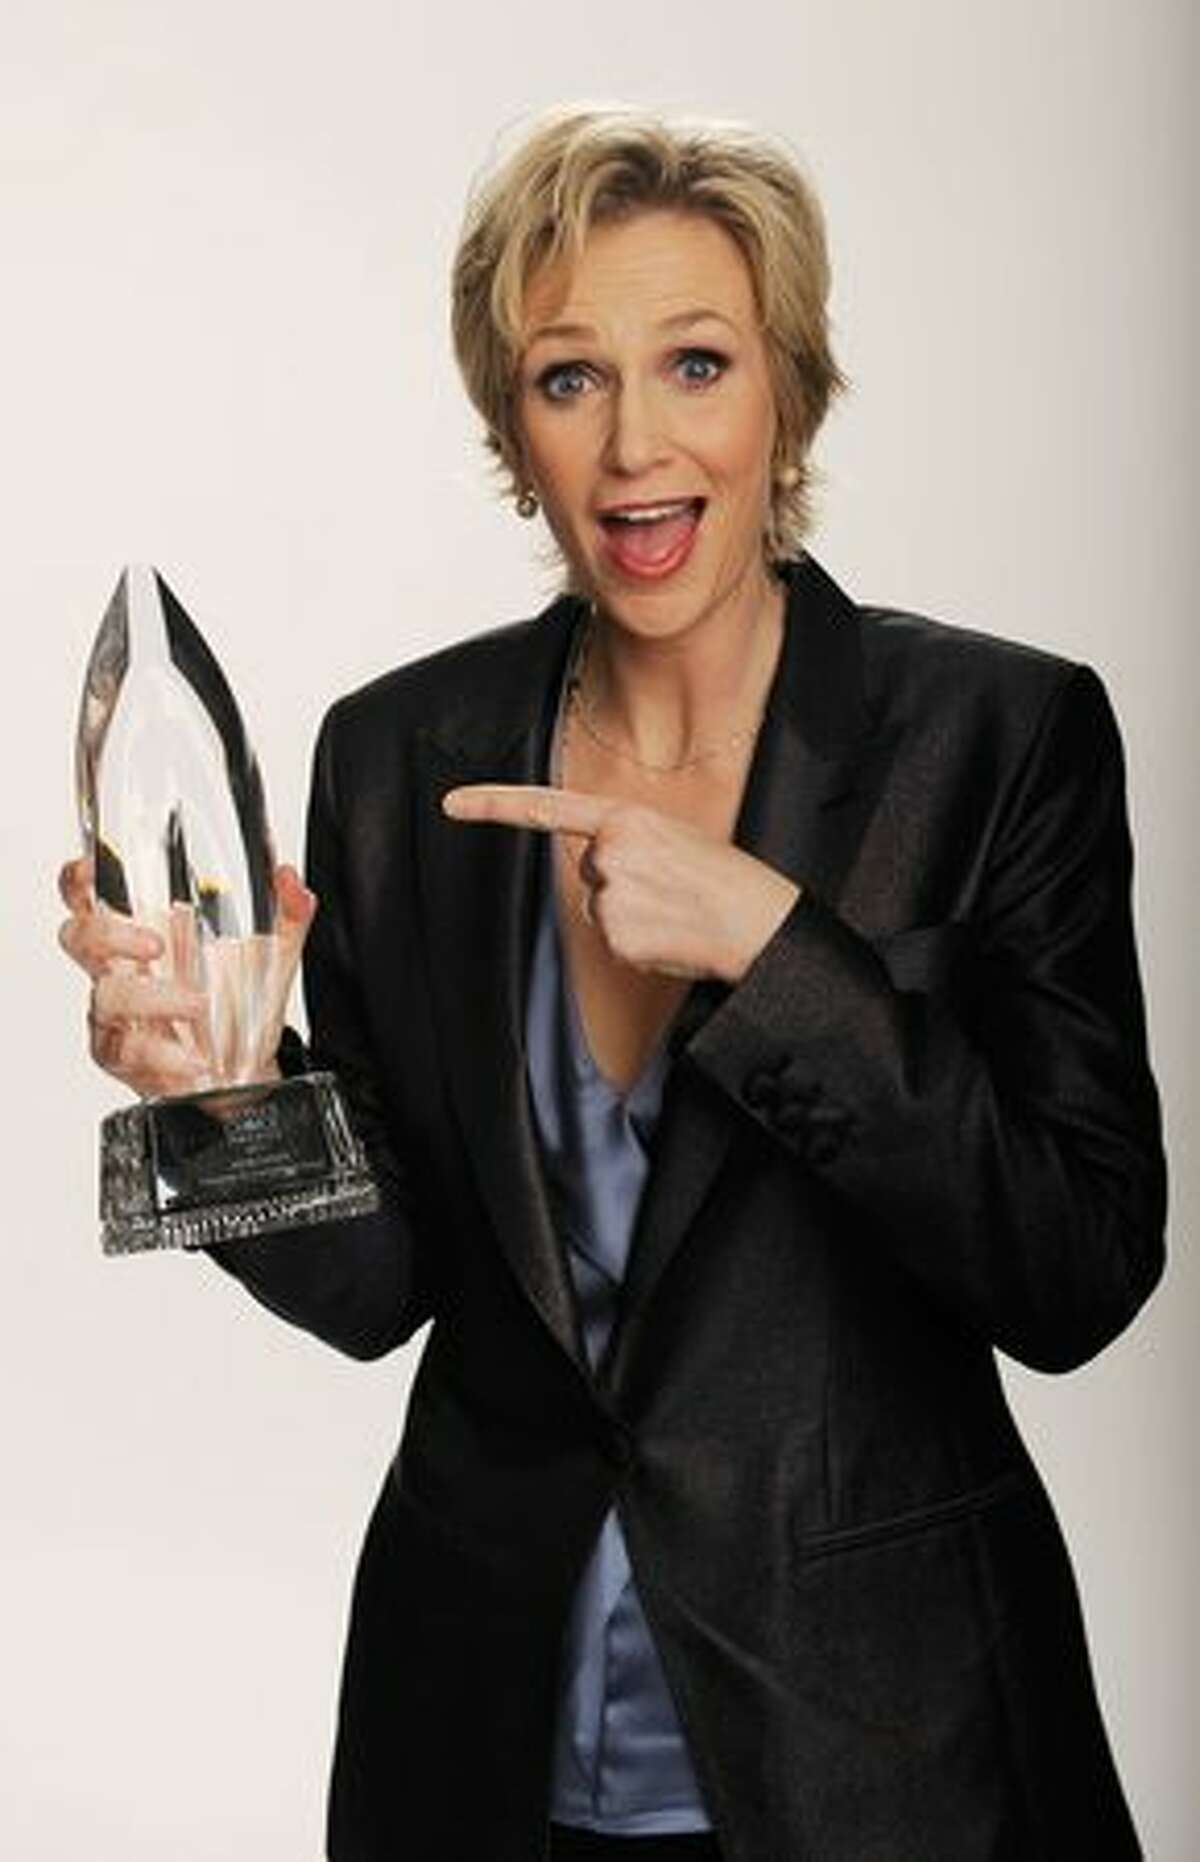 """Actress Jane Lynch, winner of the Favorite TV Comedy award for """"Glee,"""" poses for a portrait."""